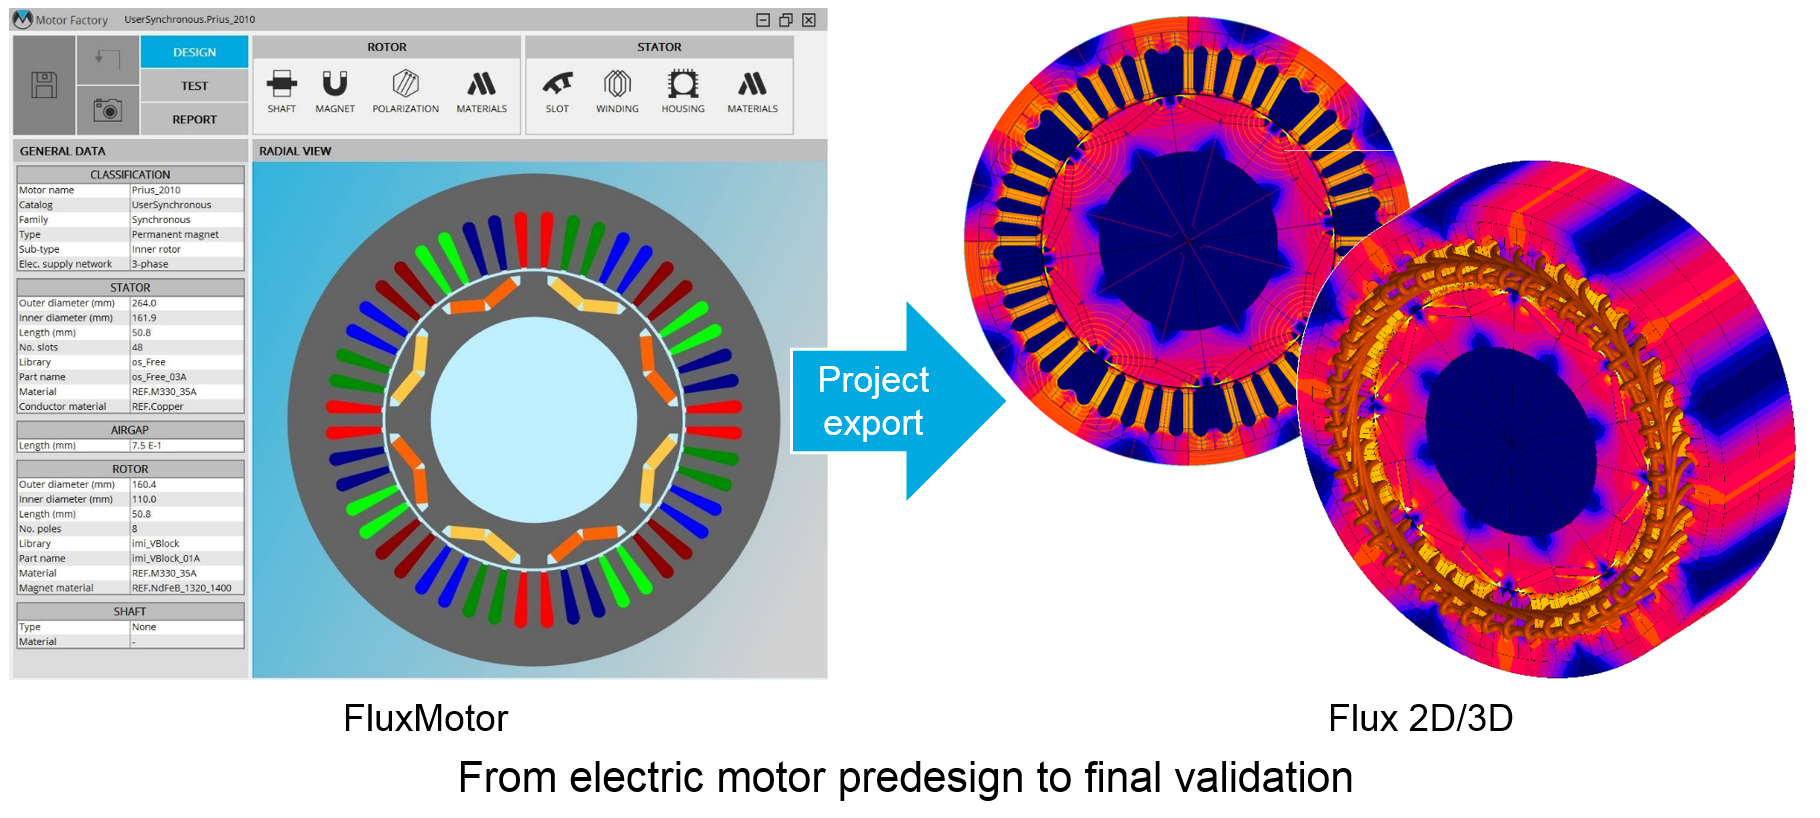 What's the difference between e-motor pre-design and design